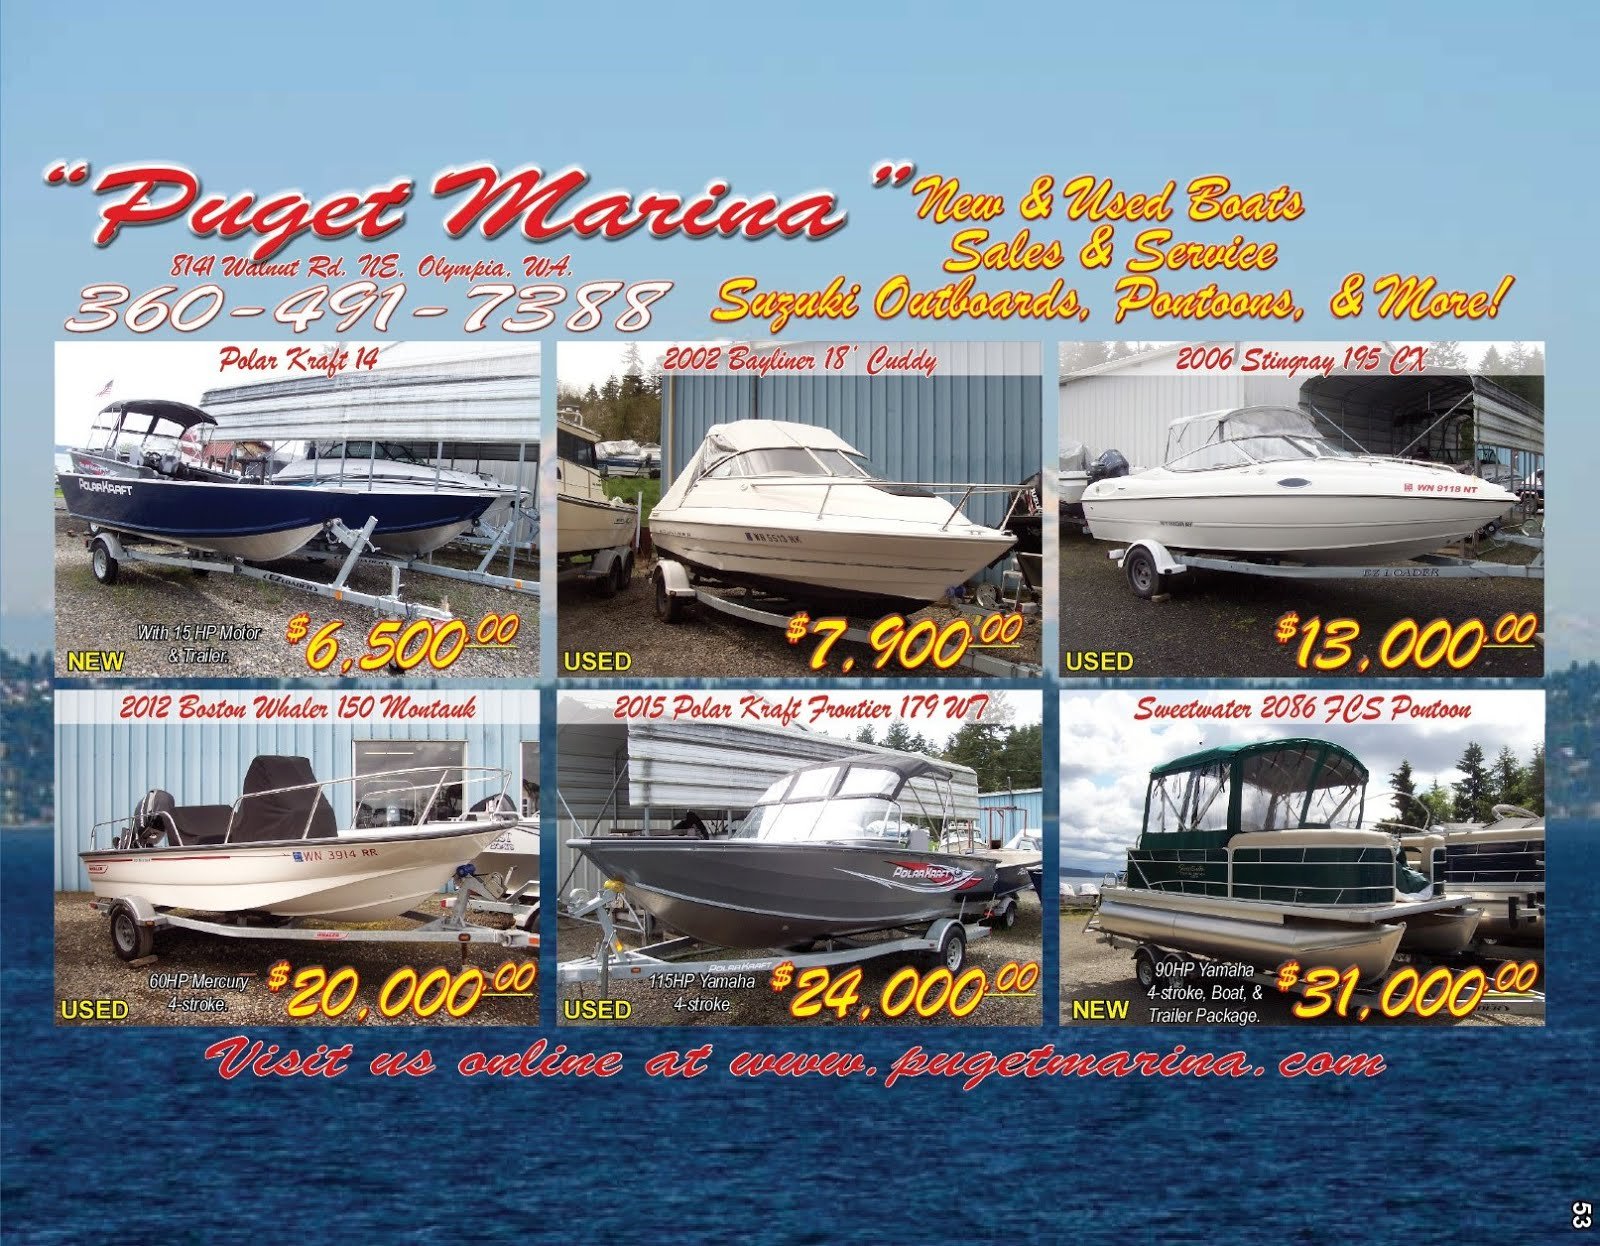 Puget Marina  Quality Boat Sales & Service Excellence Since 1965